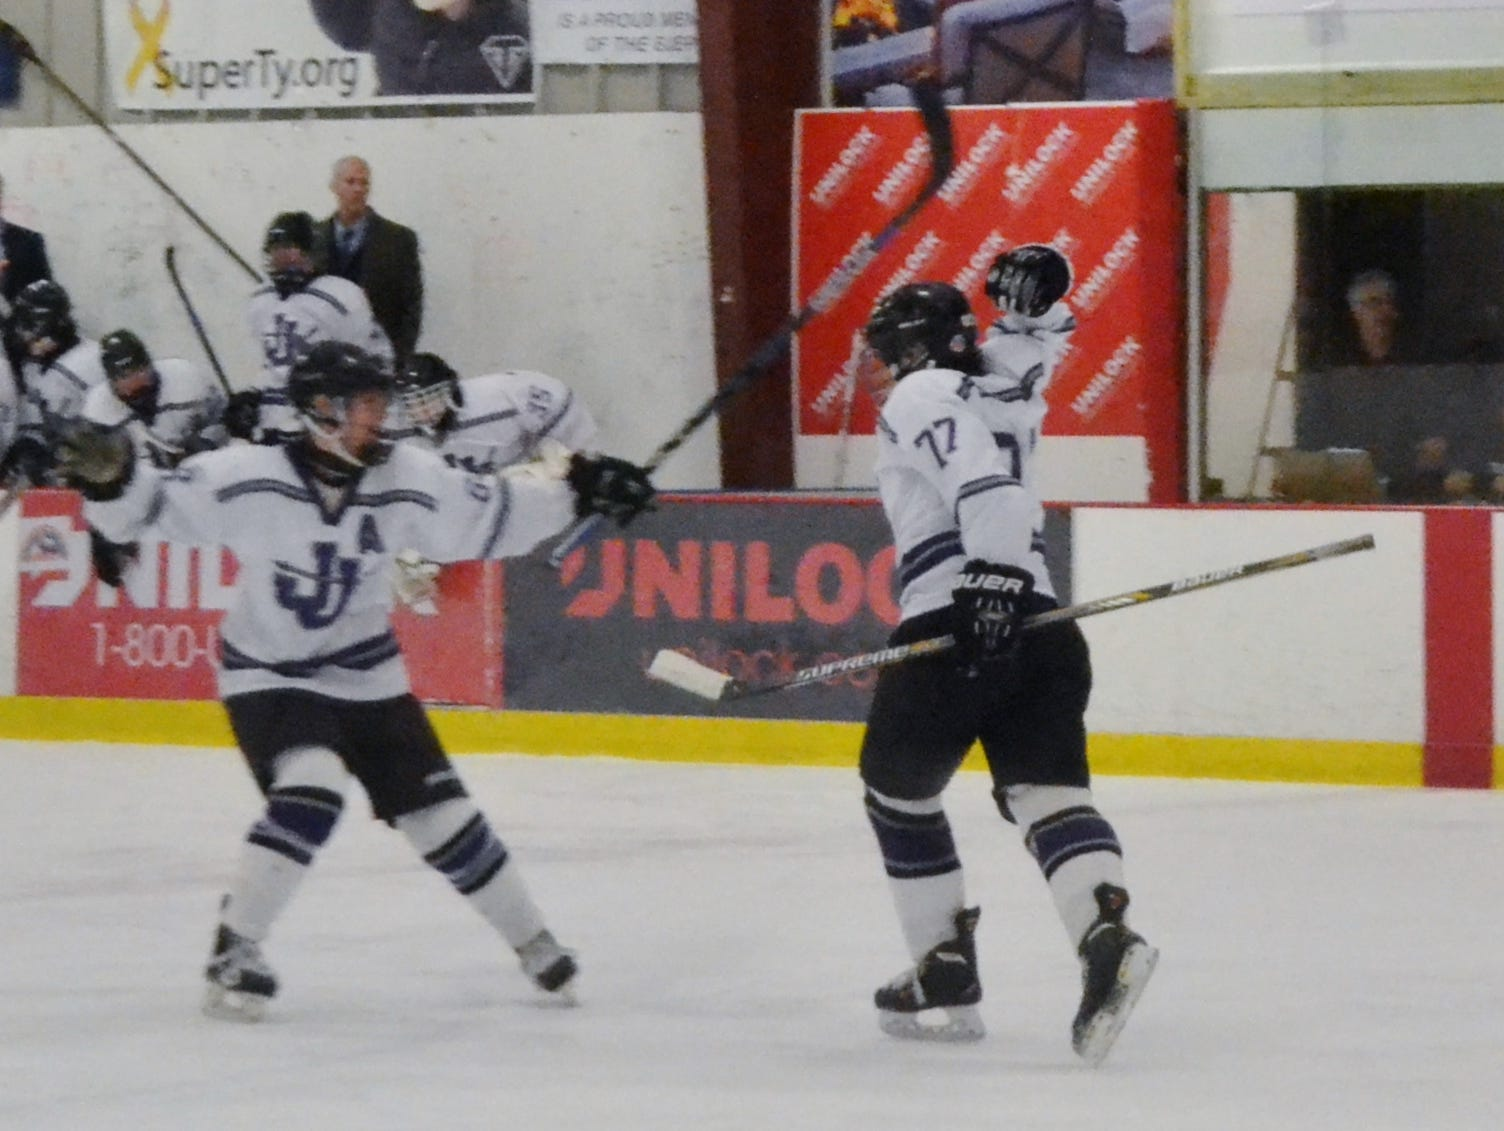 John Jay's Michael Fischetti (77) celebrates a first-period goal against Rye Town/Harrison on Wednesday in a Section 1 playoff game at Brewster Ice Arena.